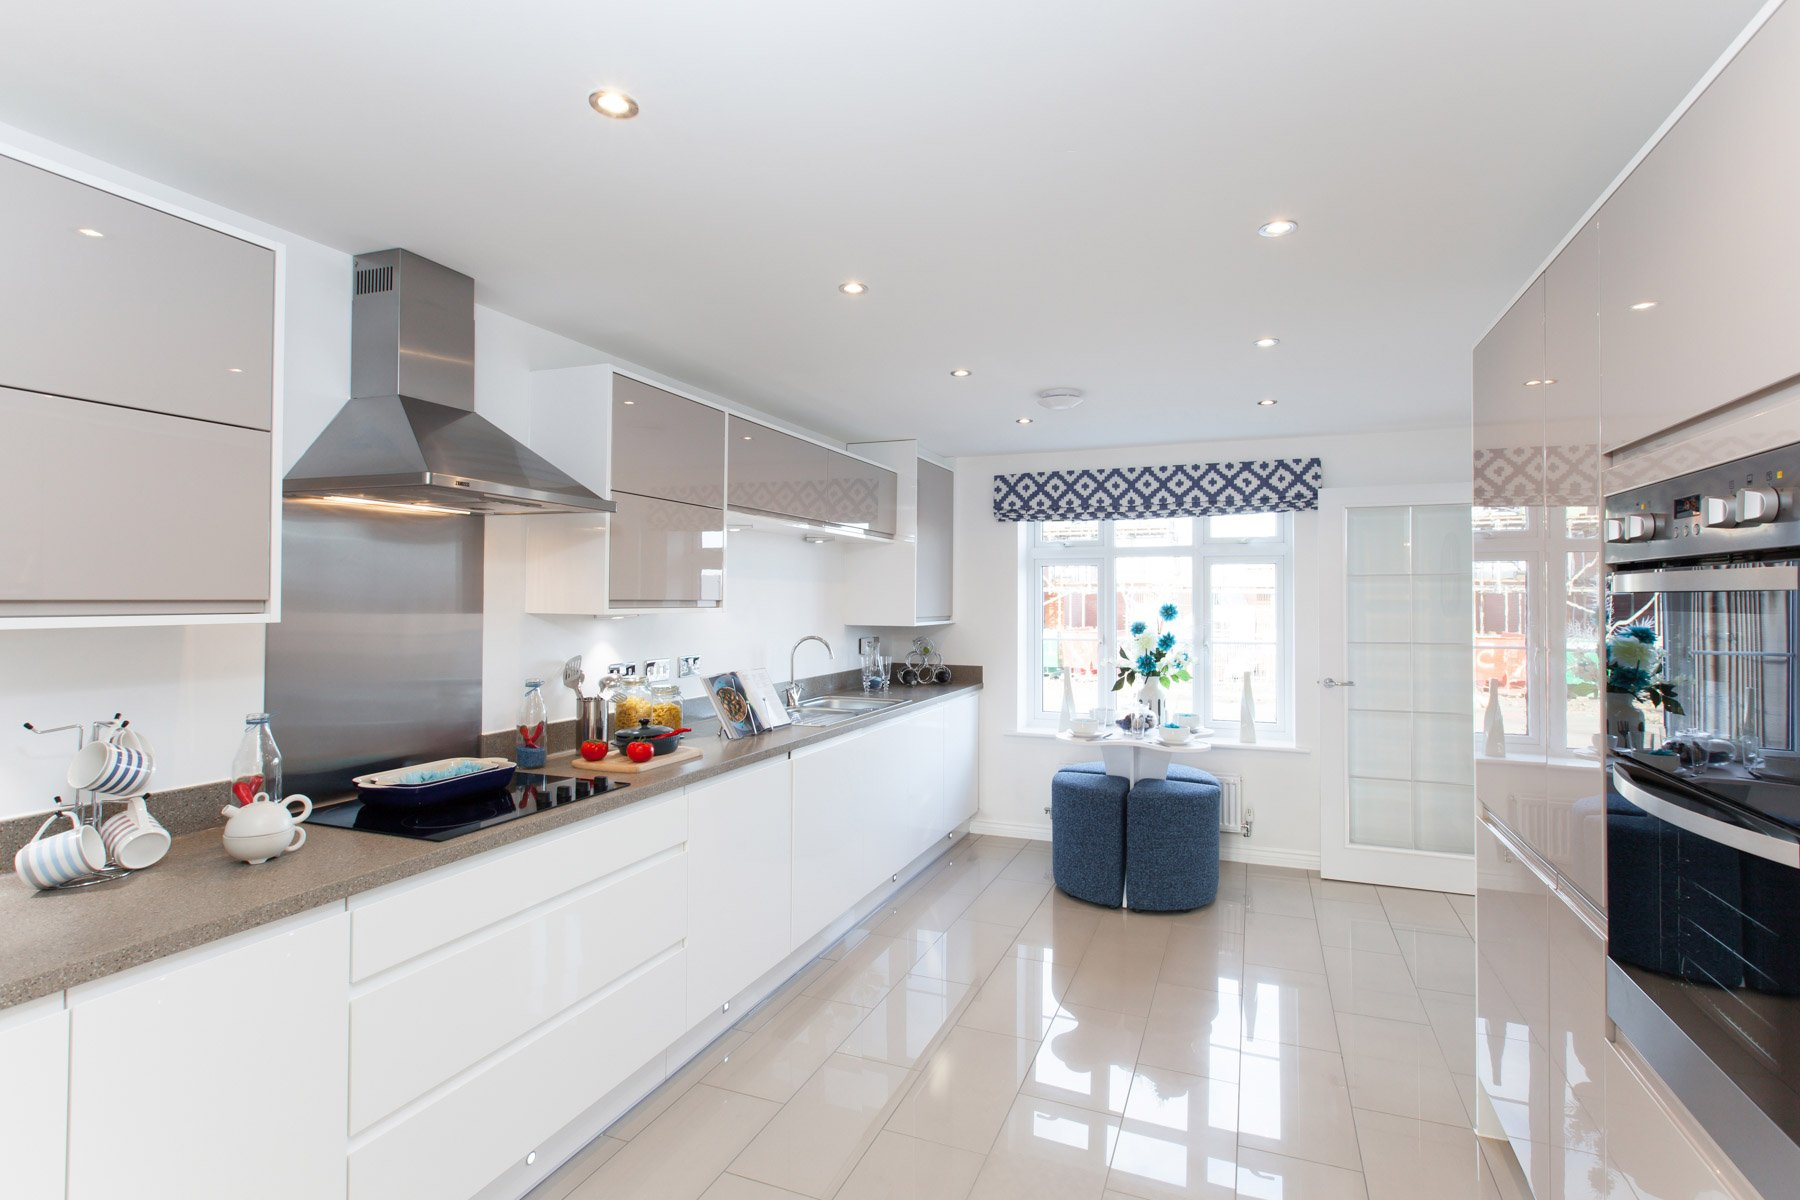 TW Exeter - Cornflowers at Cranbrook - Thornford example kitchen